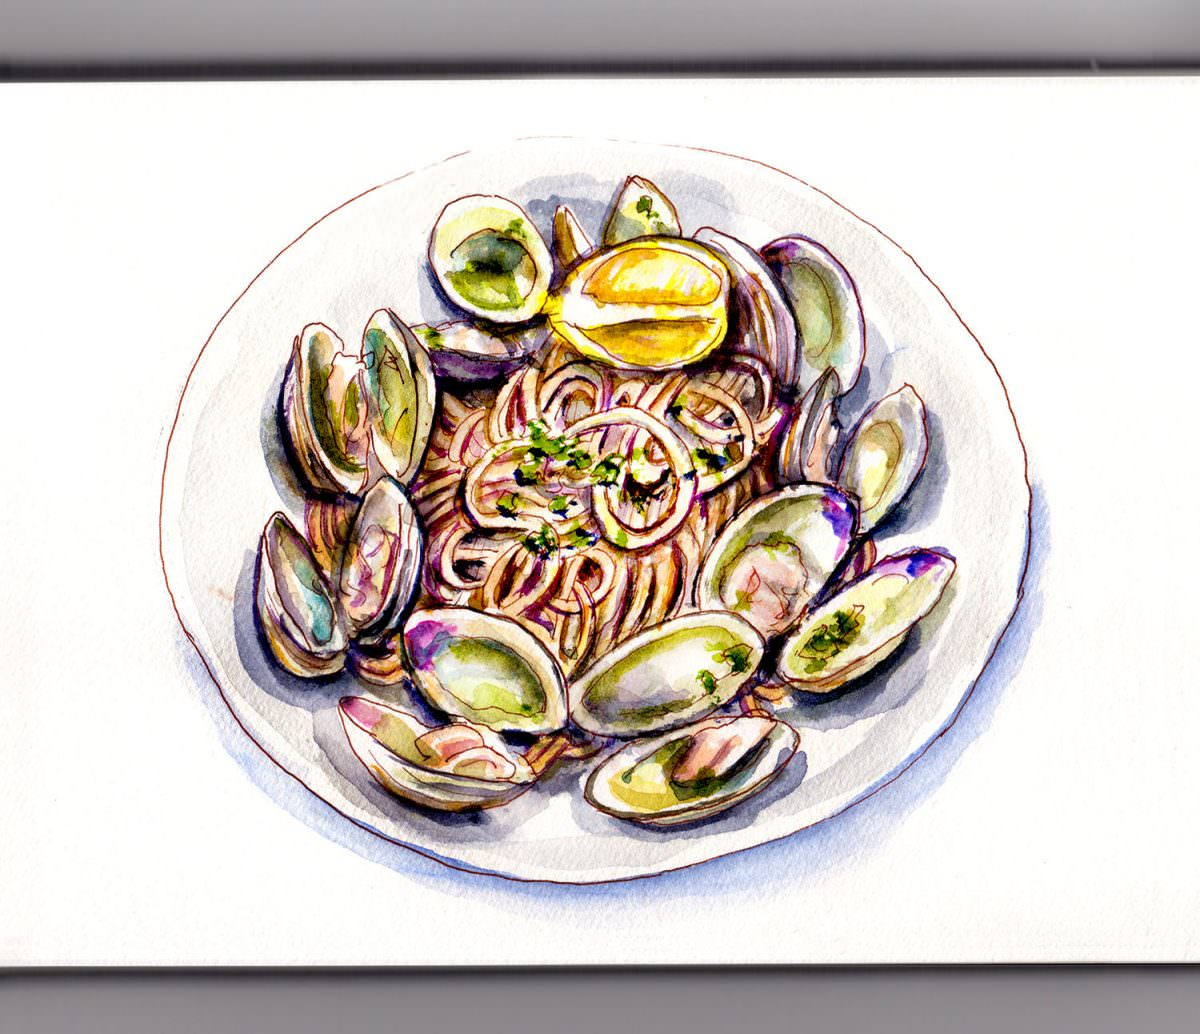 #WorldWatercolorGroup - Day 10 - Pasta And Clams - Doodlewash